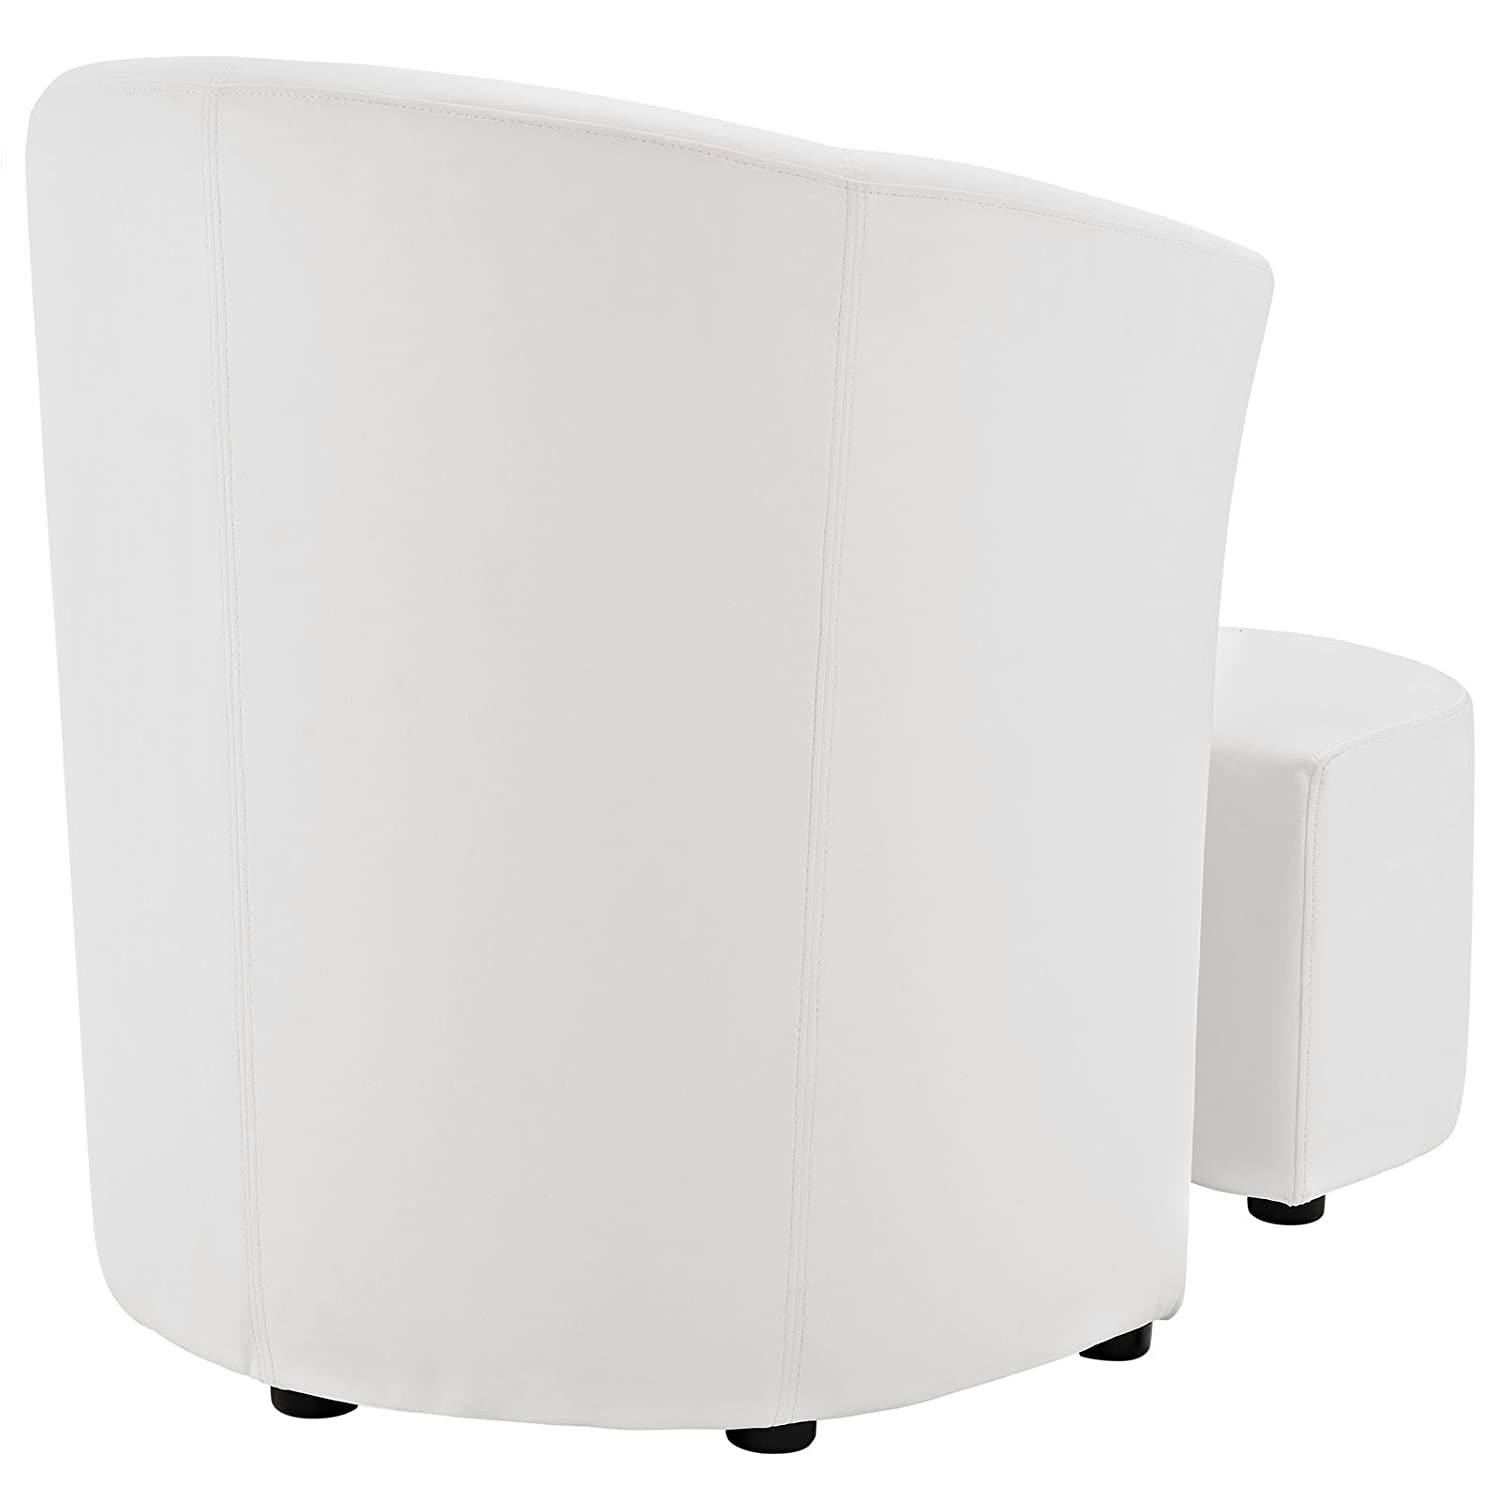 White Armchair With Ottoman #33 - Amazon.com: Modern Contemporary Armchair And Ottoman, White Faux Leather:  Kitchen U0026 Dining